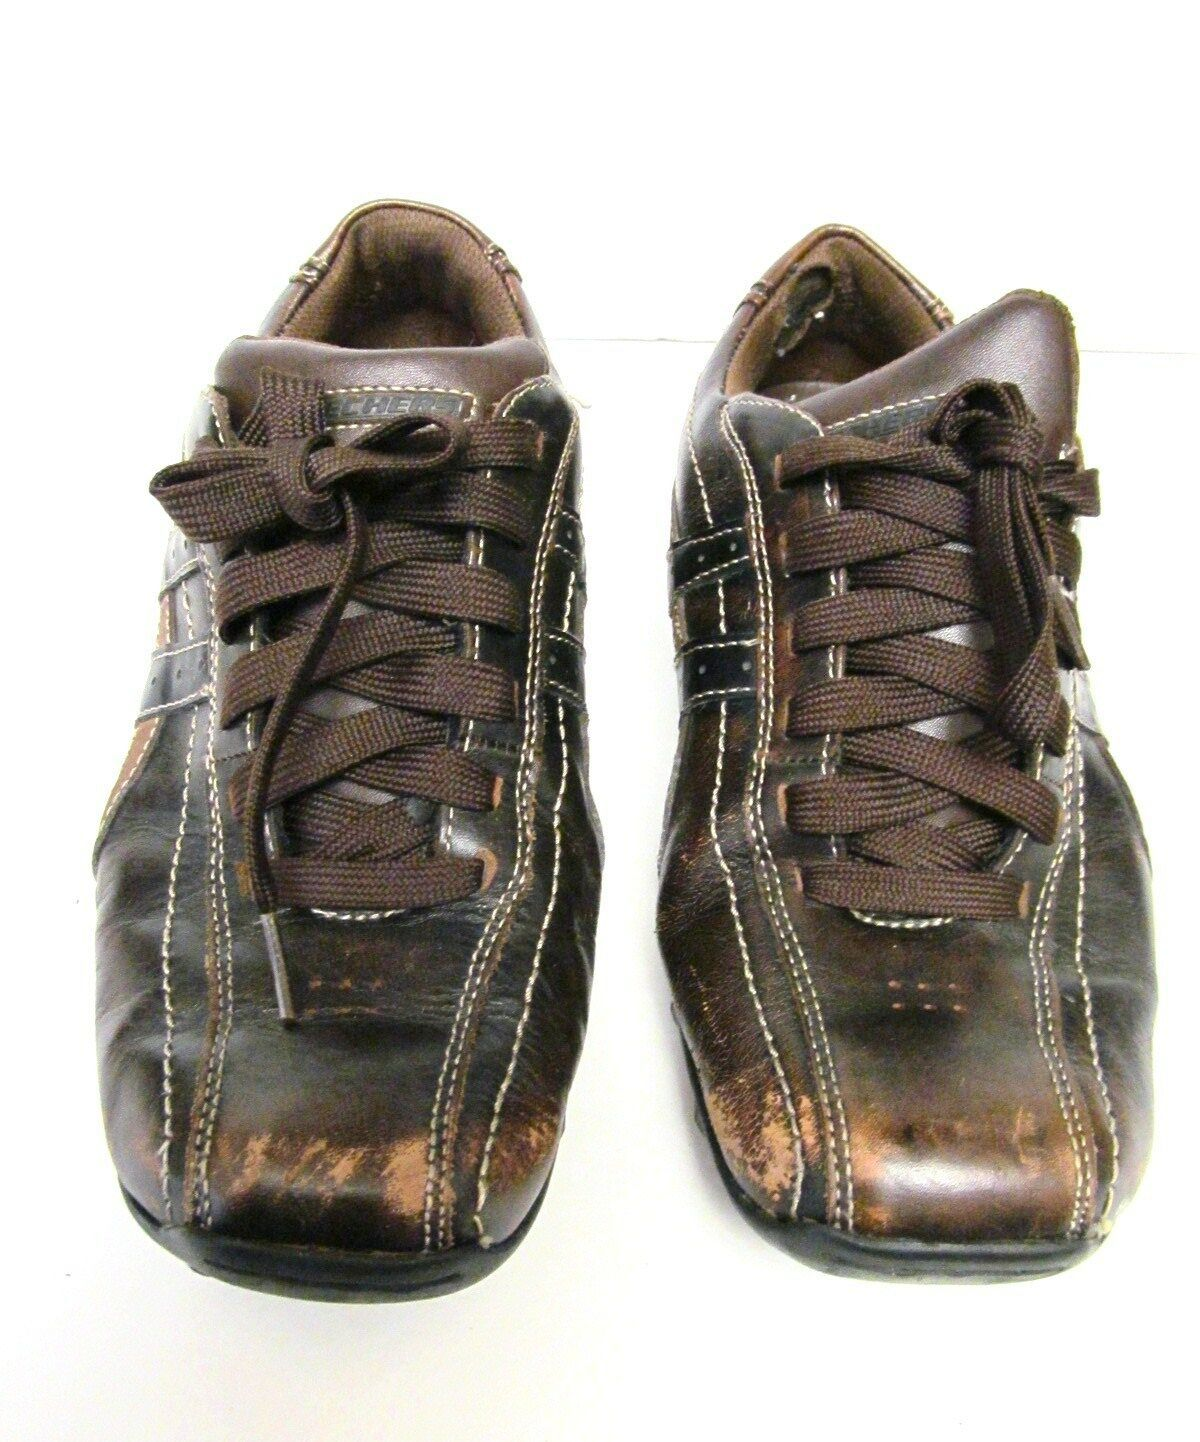 Skechers Talus Ultimatum Leather Lace up Sneakers Shoes 61181 Brown US Size 9